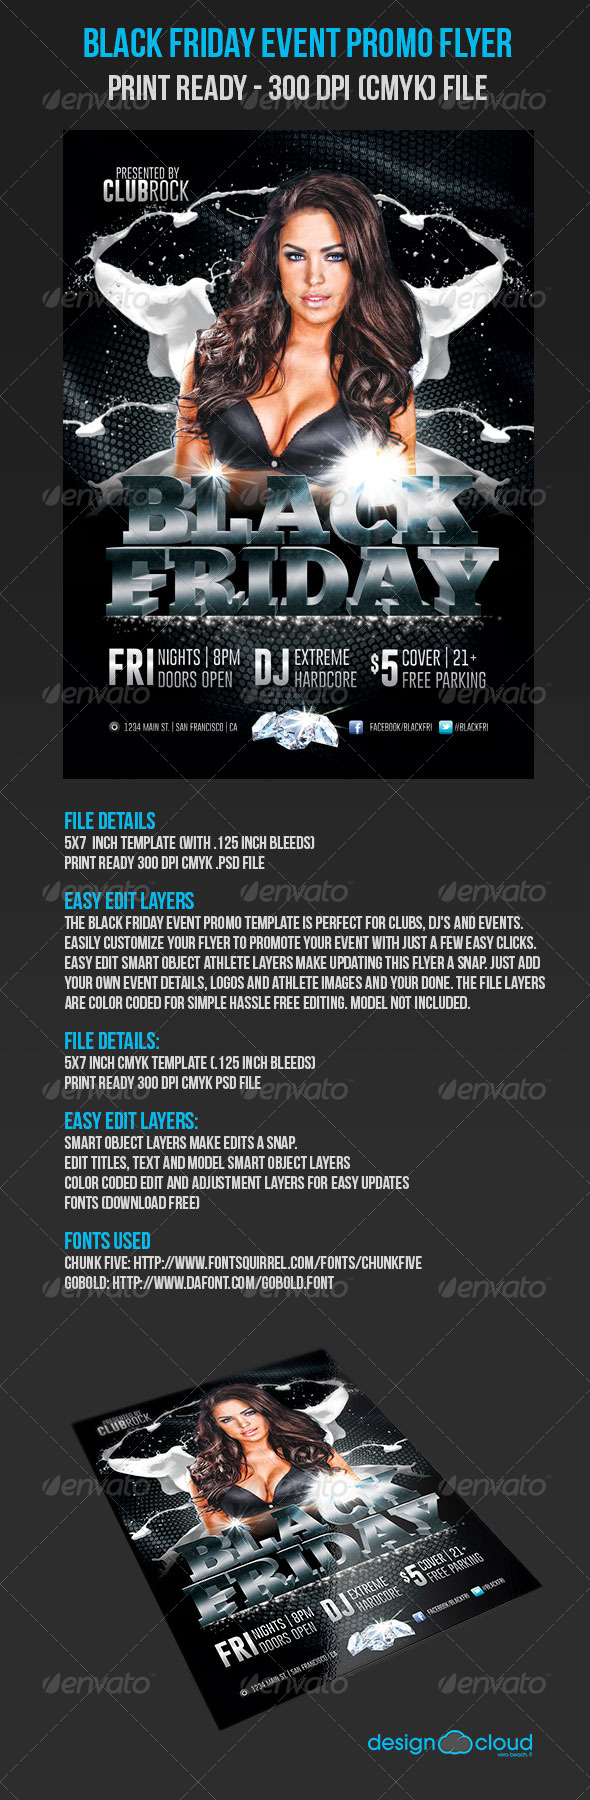 GraphicRiver Black Friday Event Promo Flyer 5653652